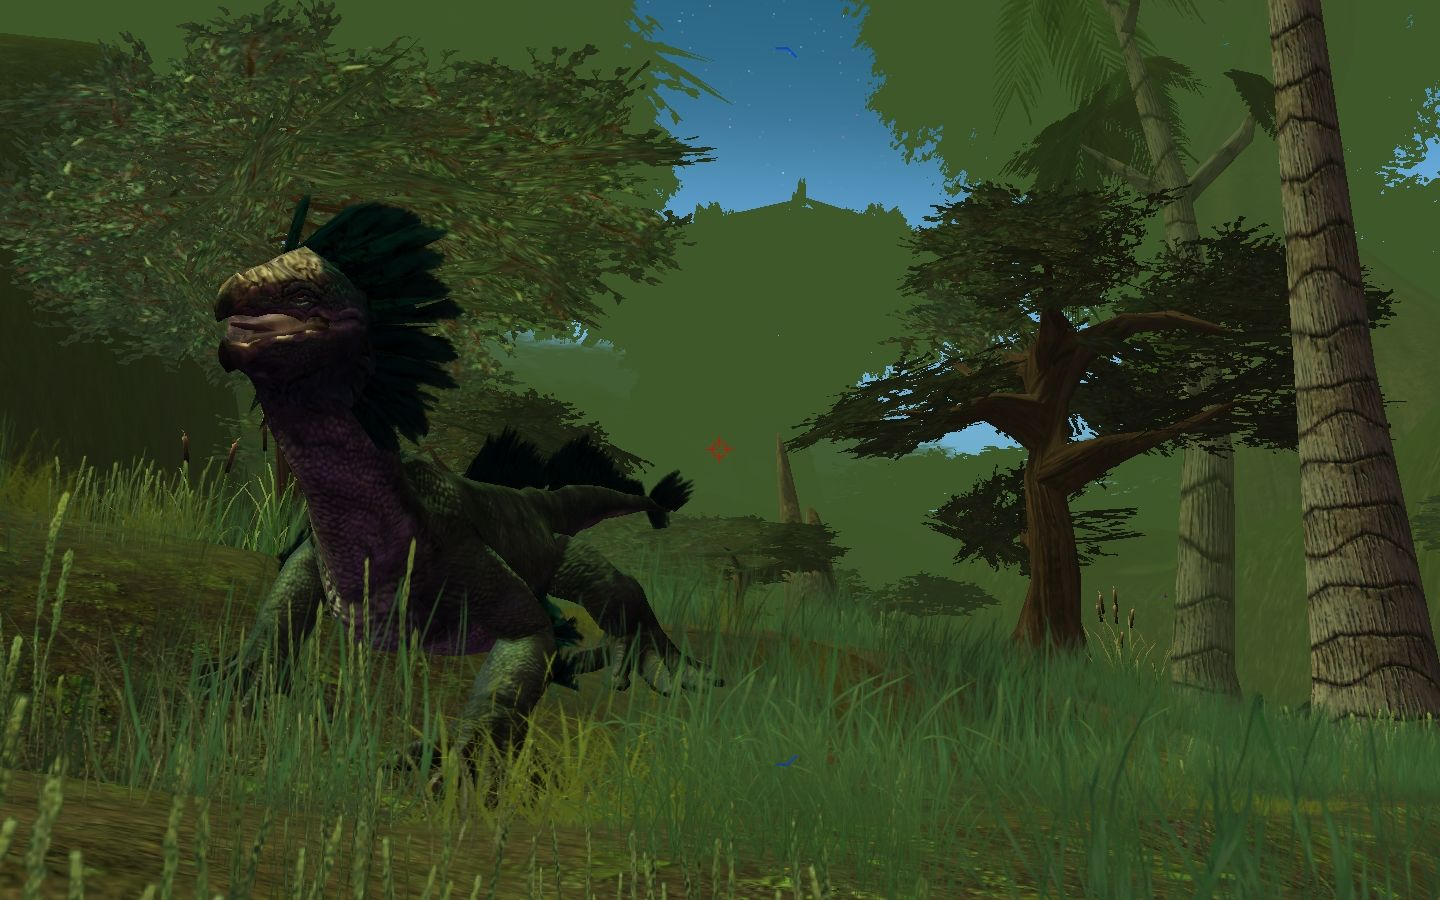 Star Wars: Galaxies - Episode III Rage of the Wookiees Windows Groups of Varactyl roam the planet. A deeded version was awarded as a mount to players who bought the expansion.